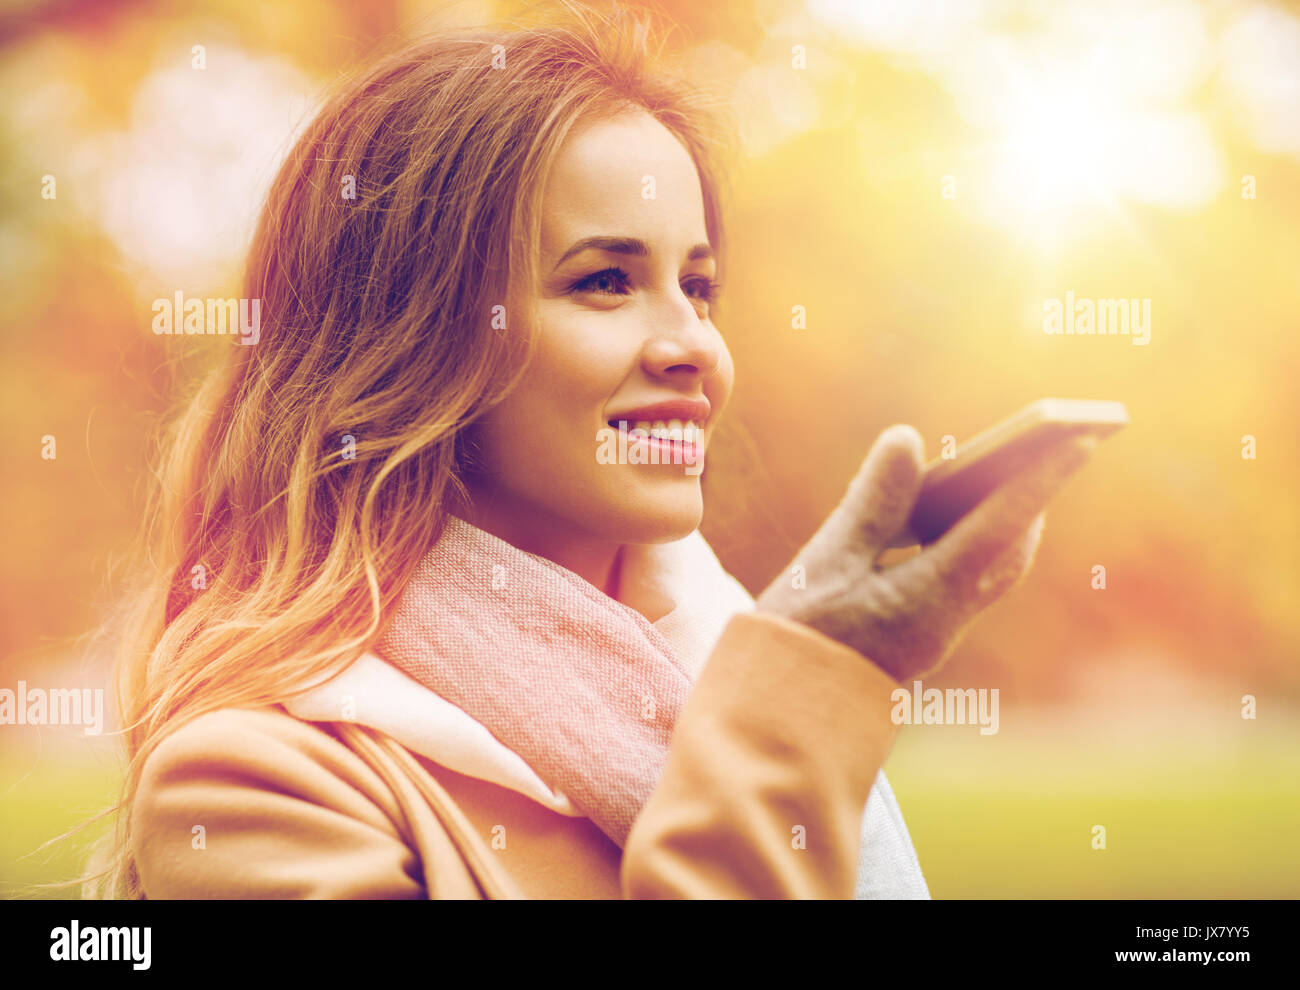 woman recording voice on smartphone in autumn park - Stock Image